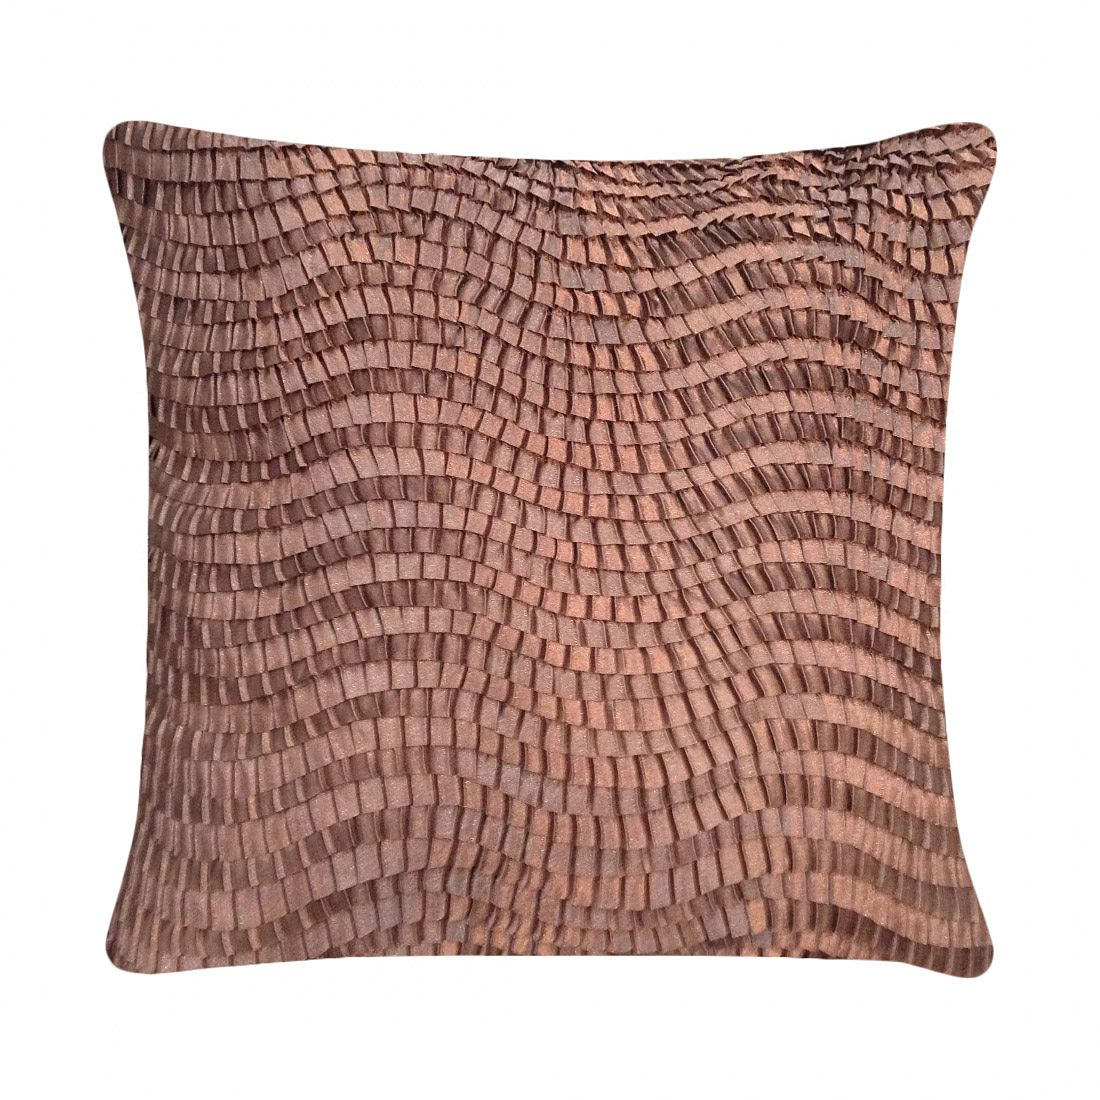 Home 24 - Housse de coussin brokat, my flair